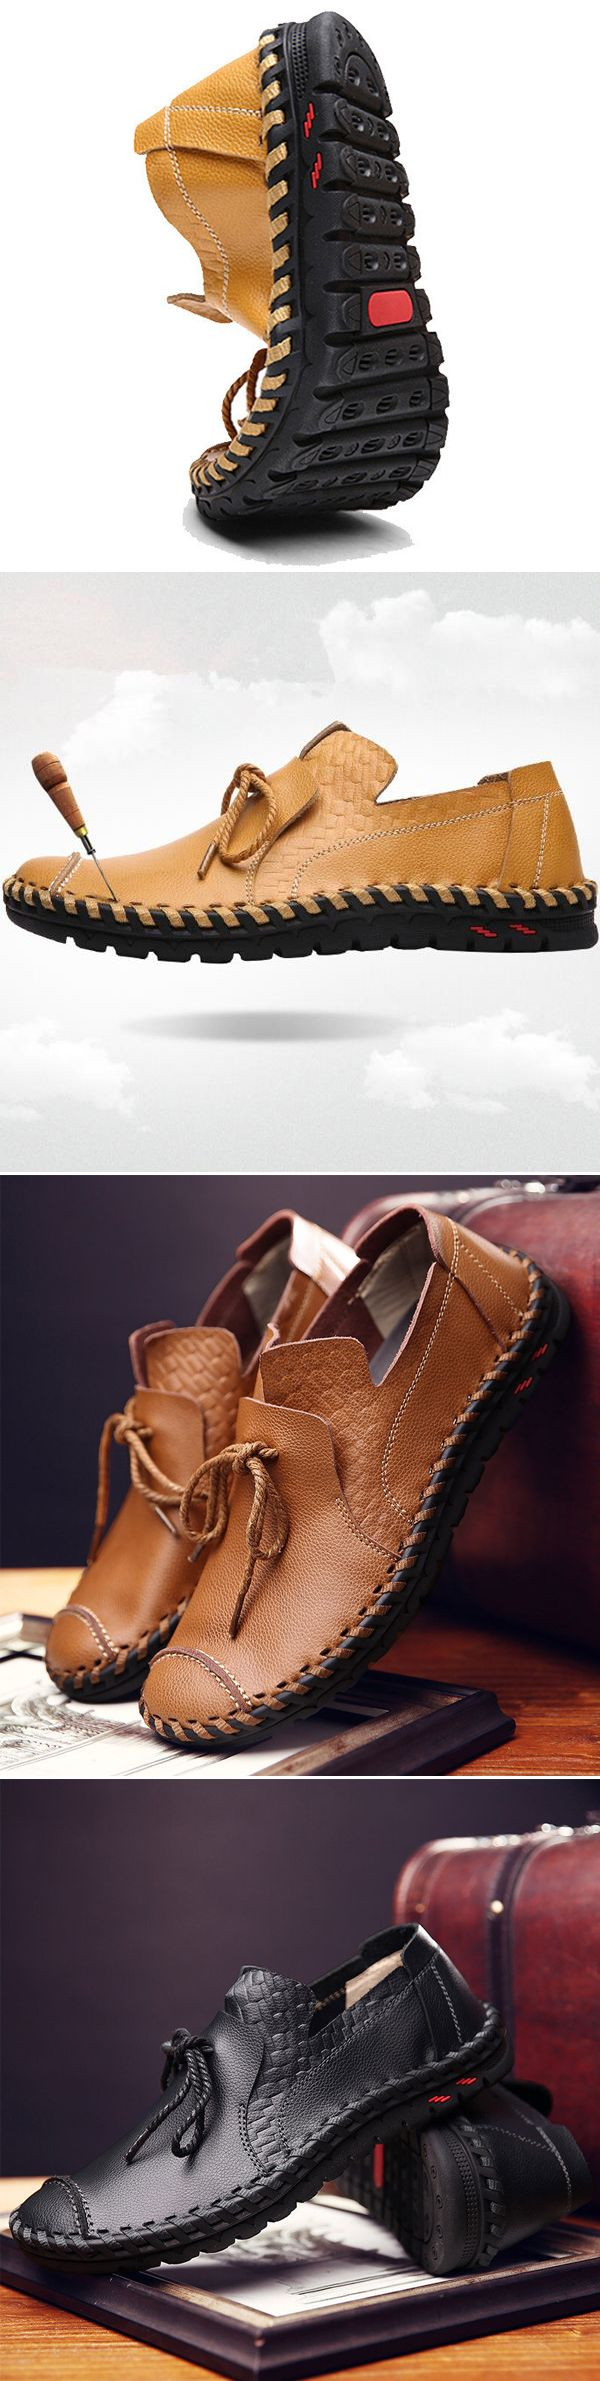 US$S39.98(48% OFF)#Men's Stitching Soft Sole Lace Up Decoration Casual Driving Loafers